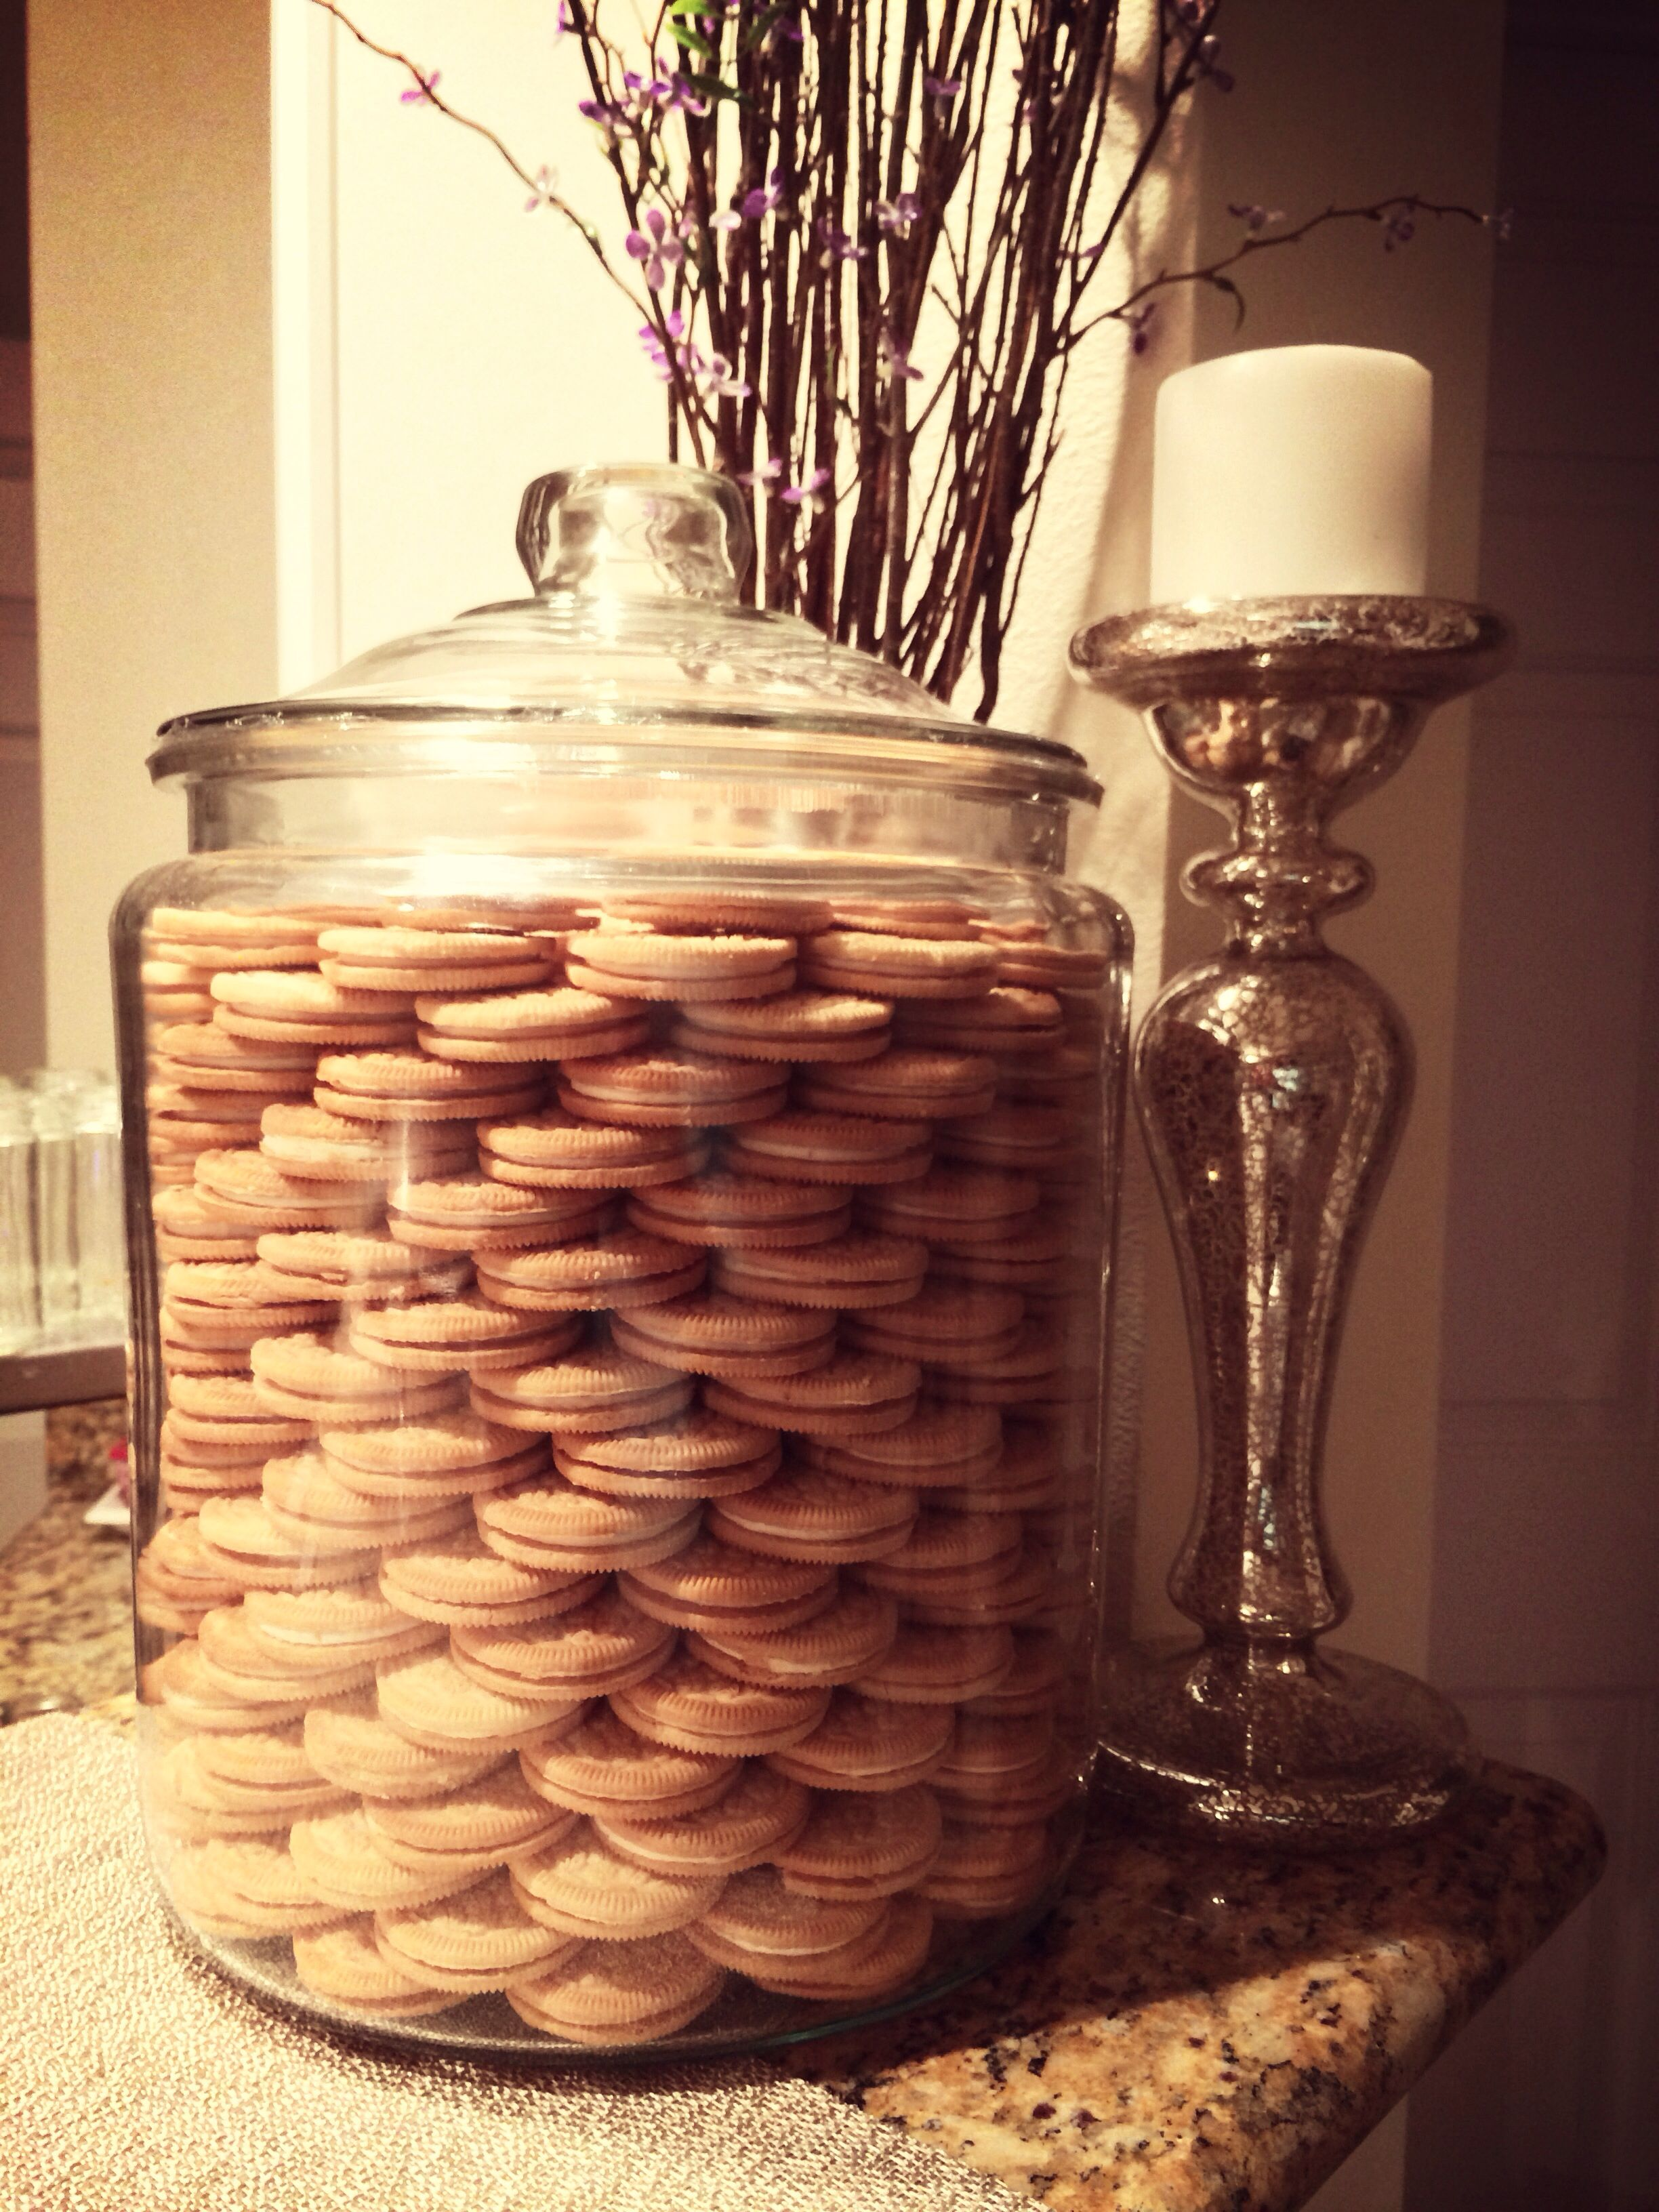 Khloe Kardashian Cookie Jar Pleasing My Khloe Kardashian Inspired Cookie Jar 3  Pretty Diys  Pinterest Decorating Inspiration